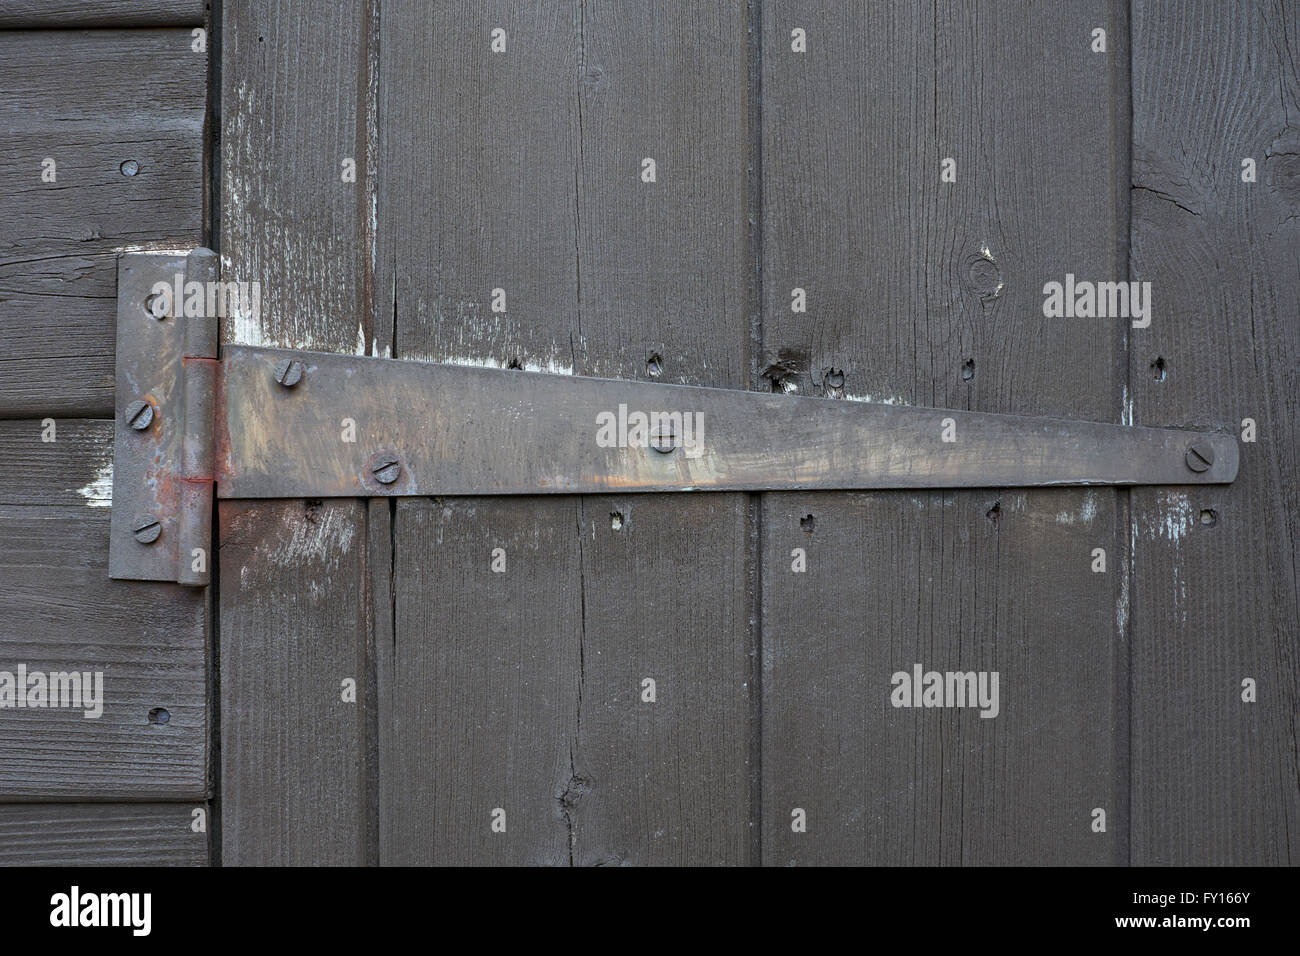 Old tee hinge on shed door - Stock Image